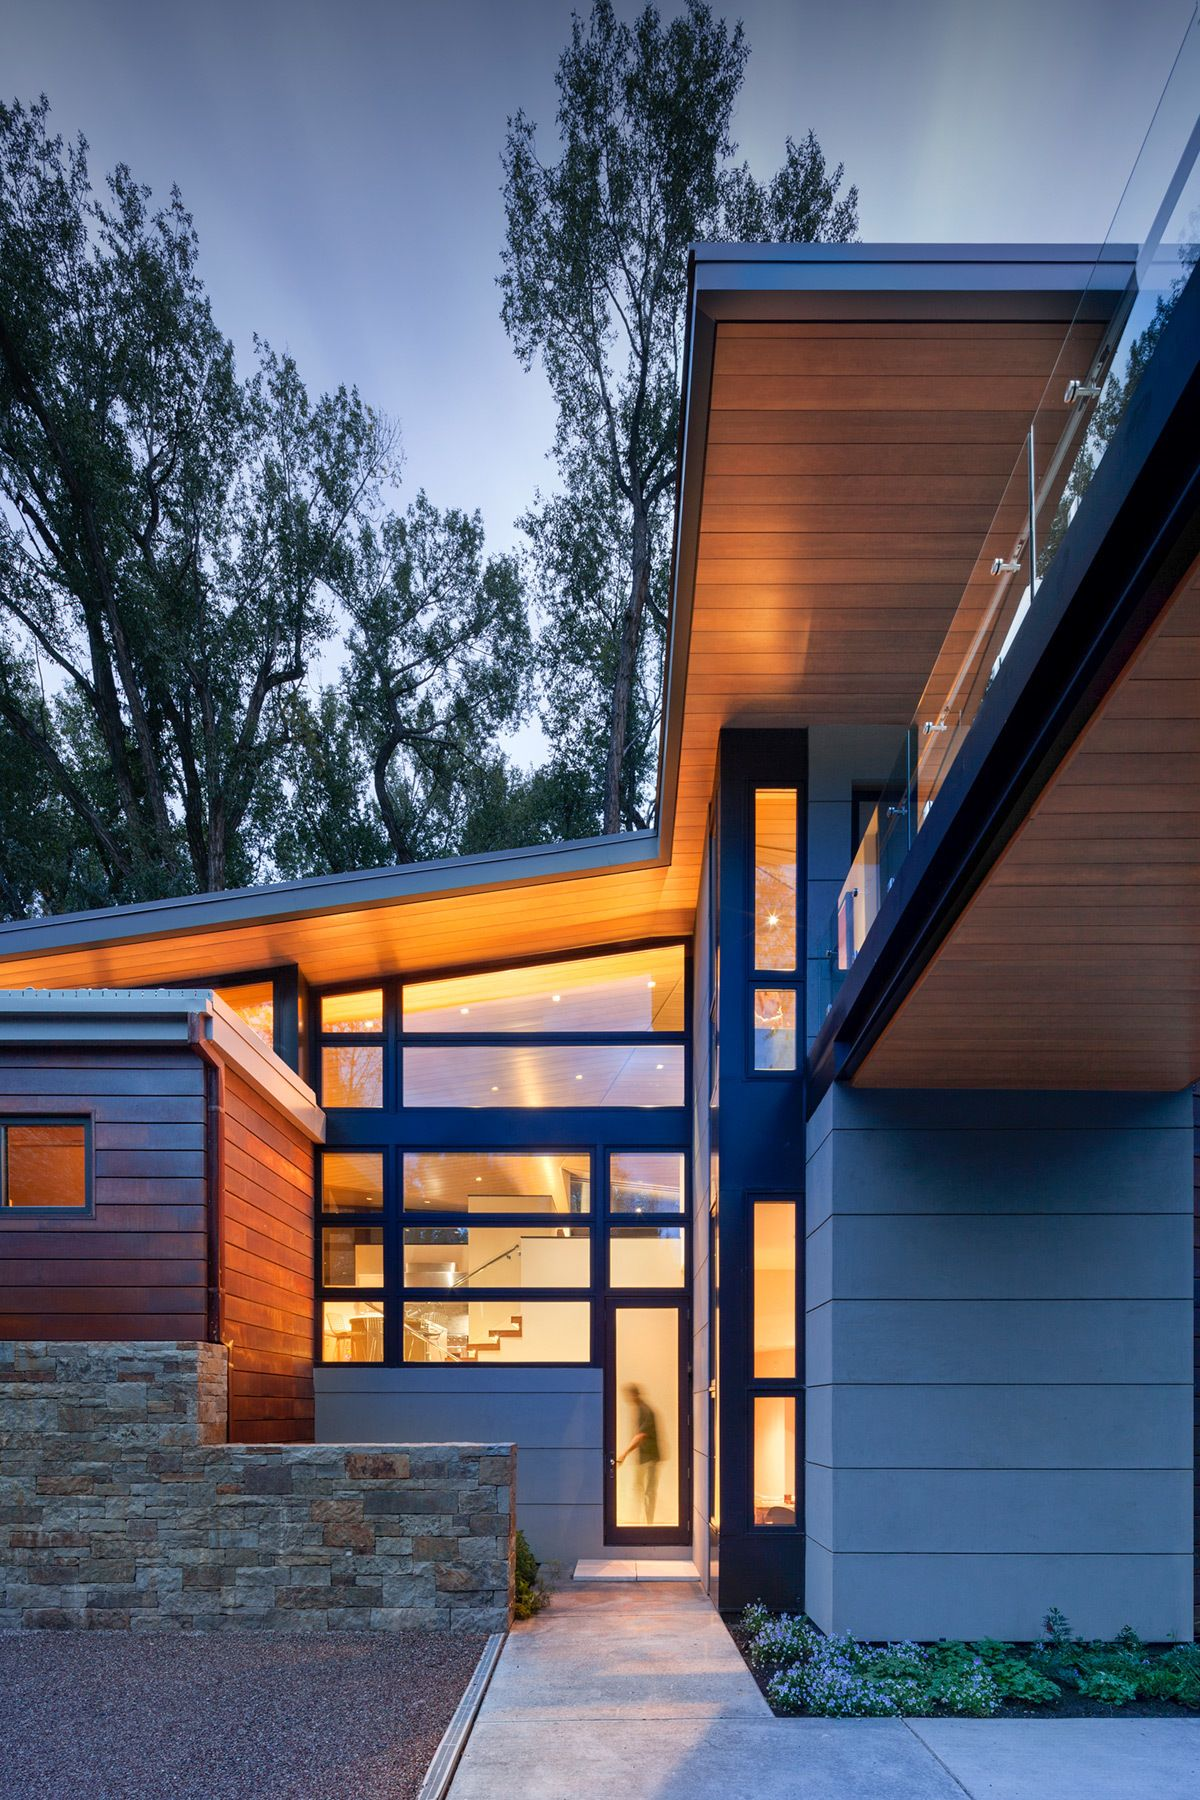 Ccy architects woody creek architect modern exterior